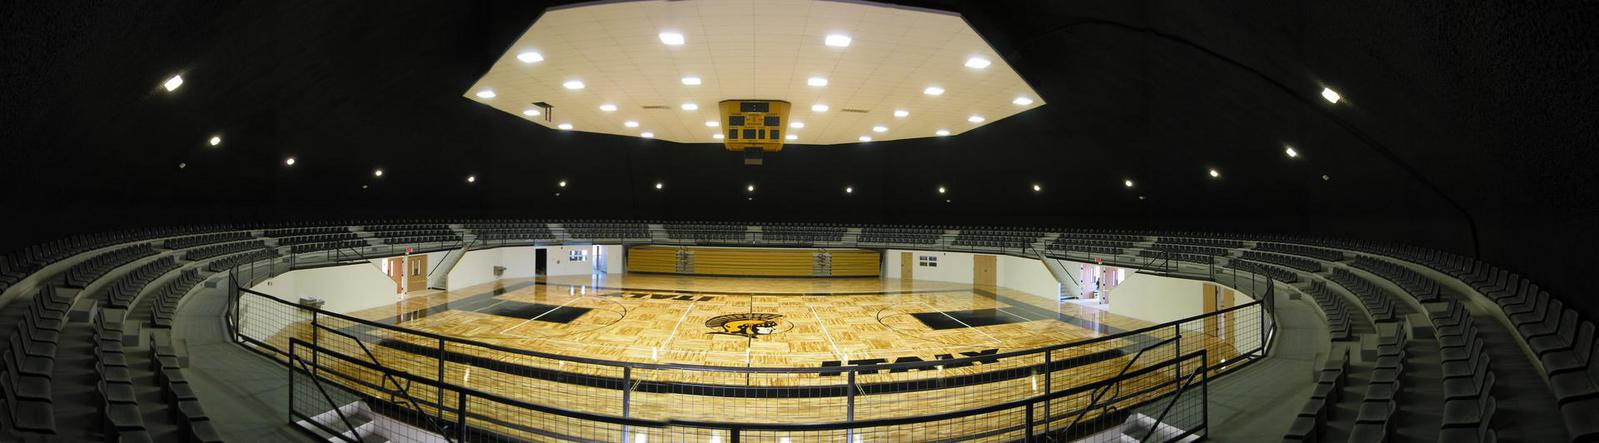 Interior of gym